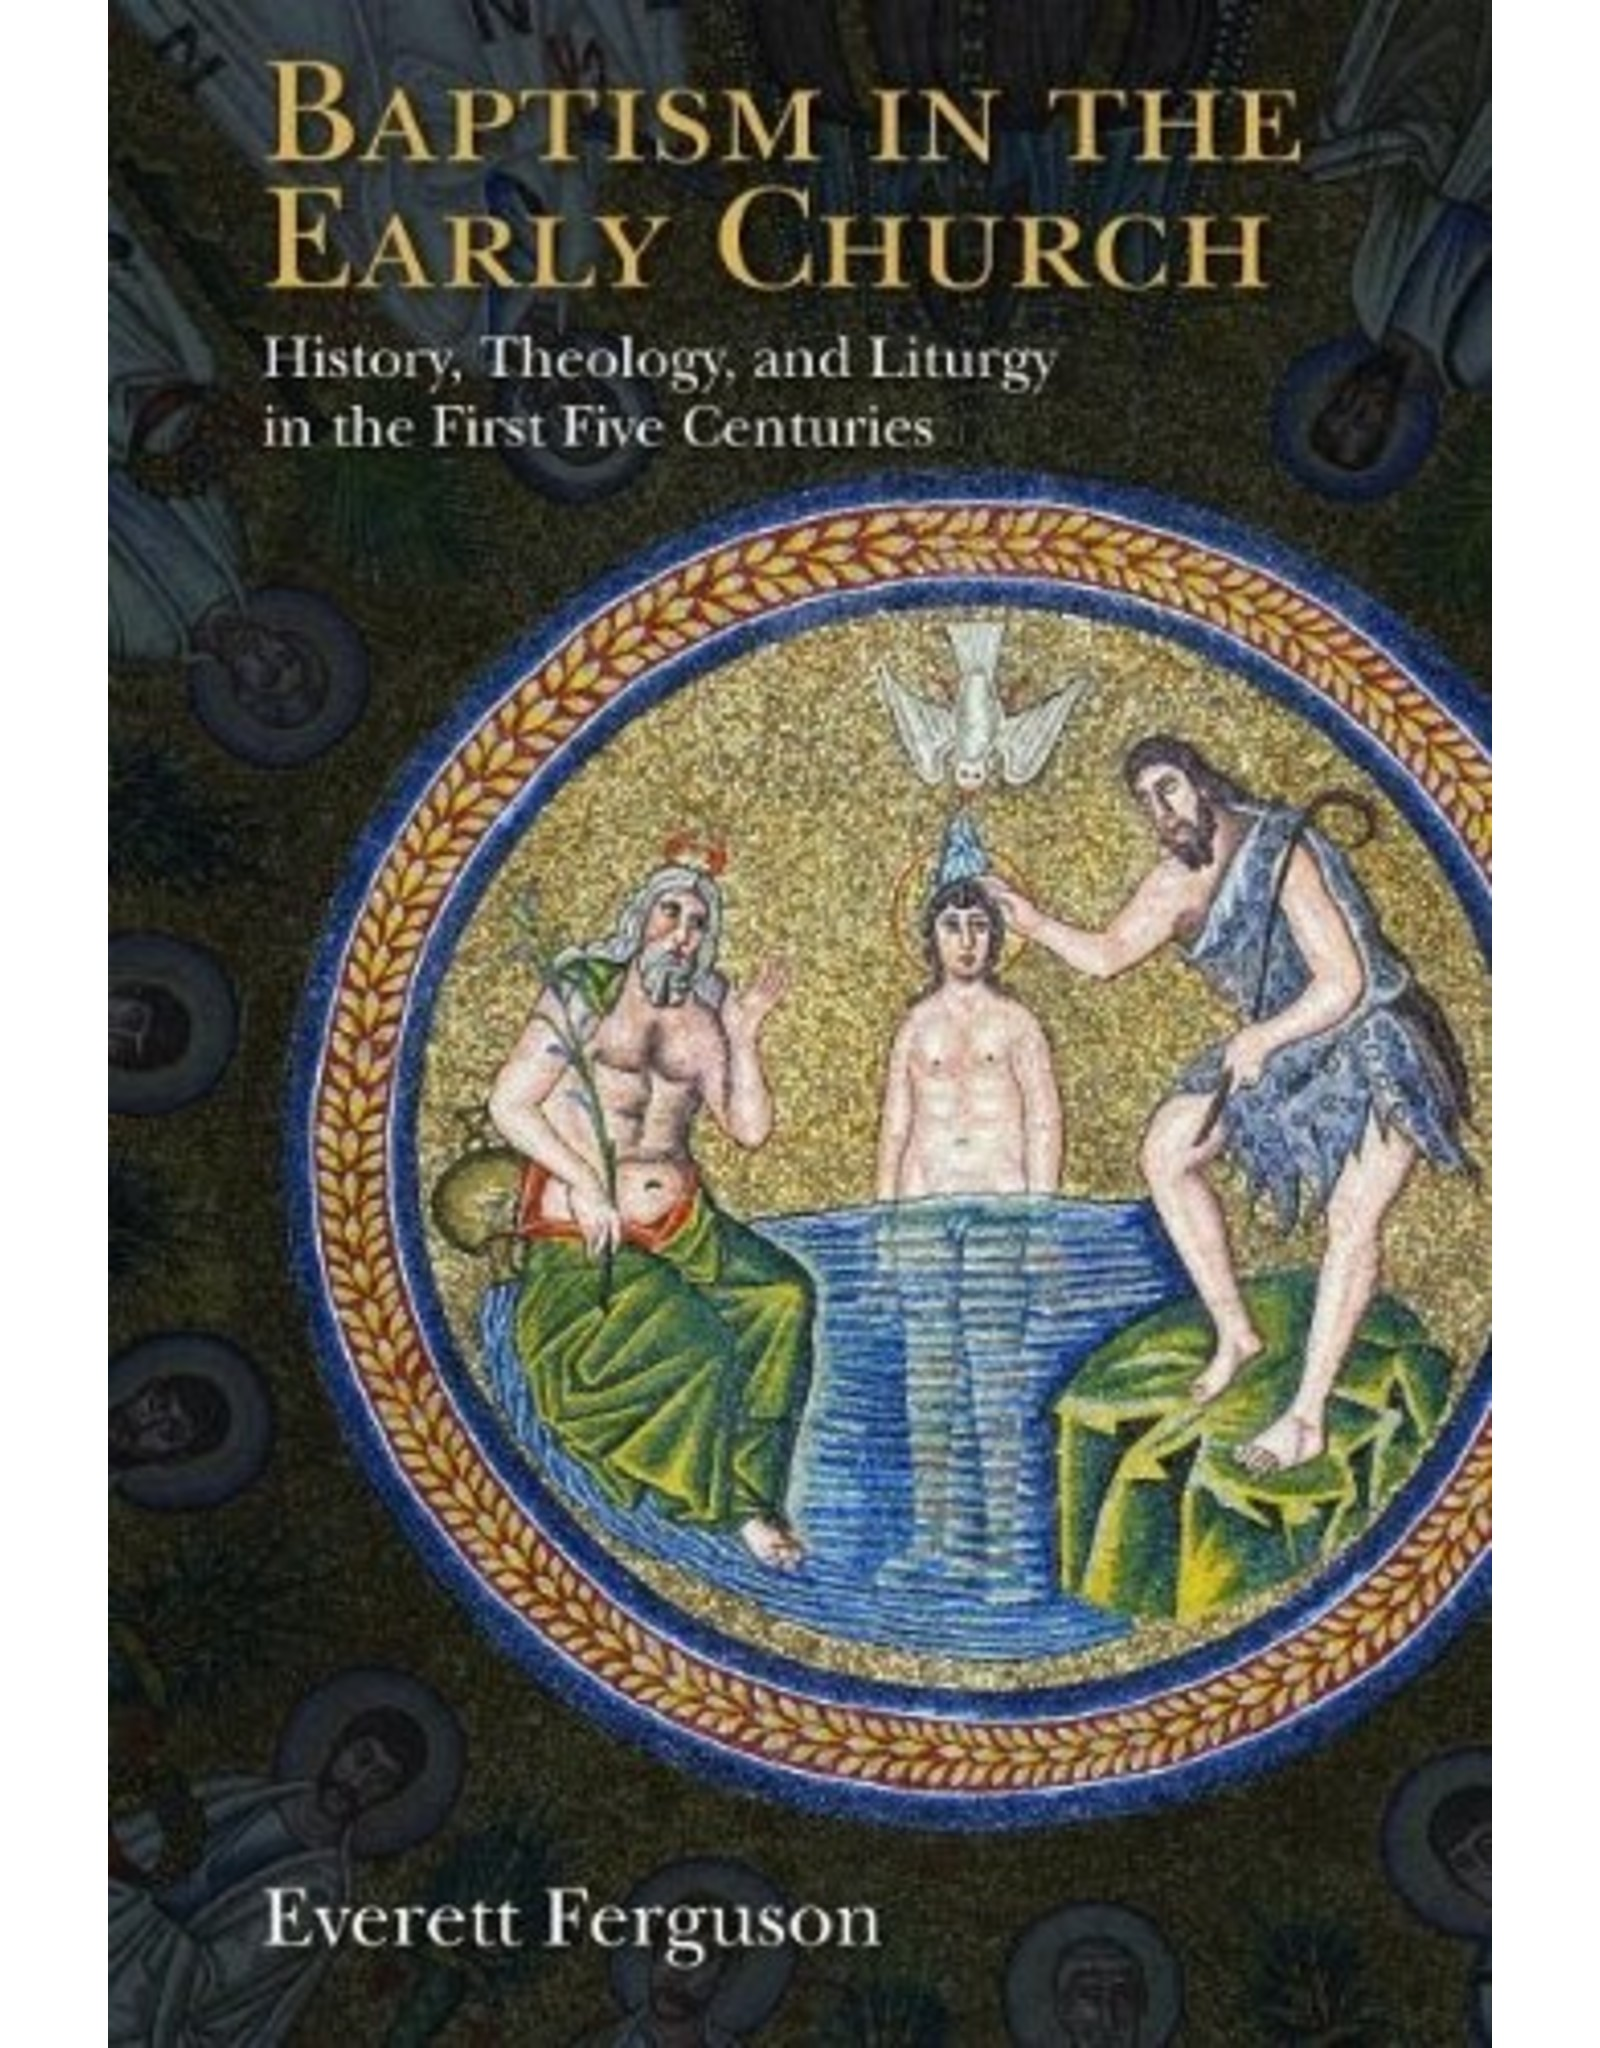 Wm. B. Eerdmans Baptism in the Early Church